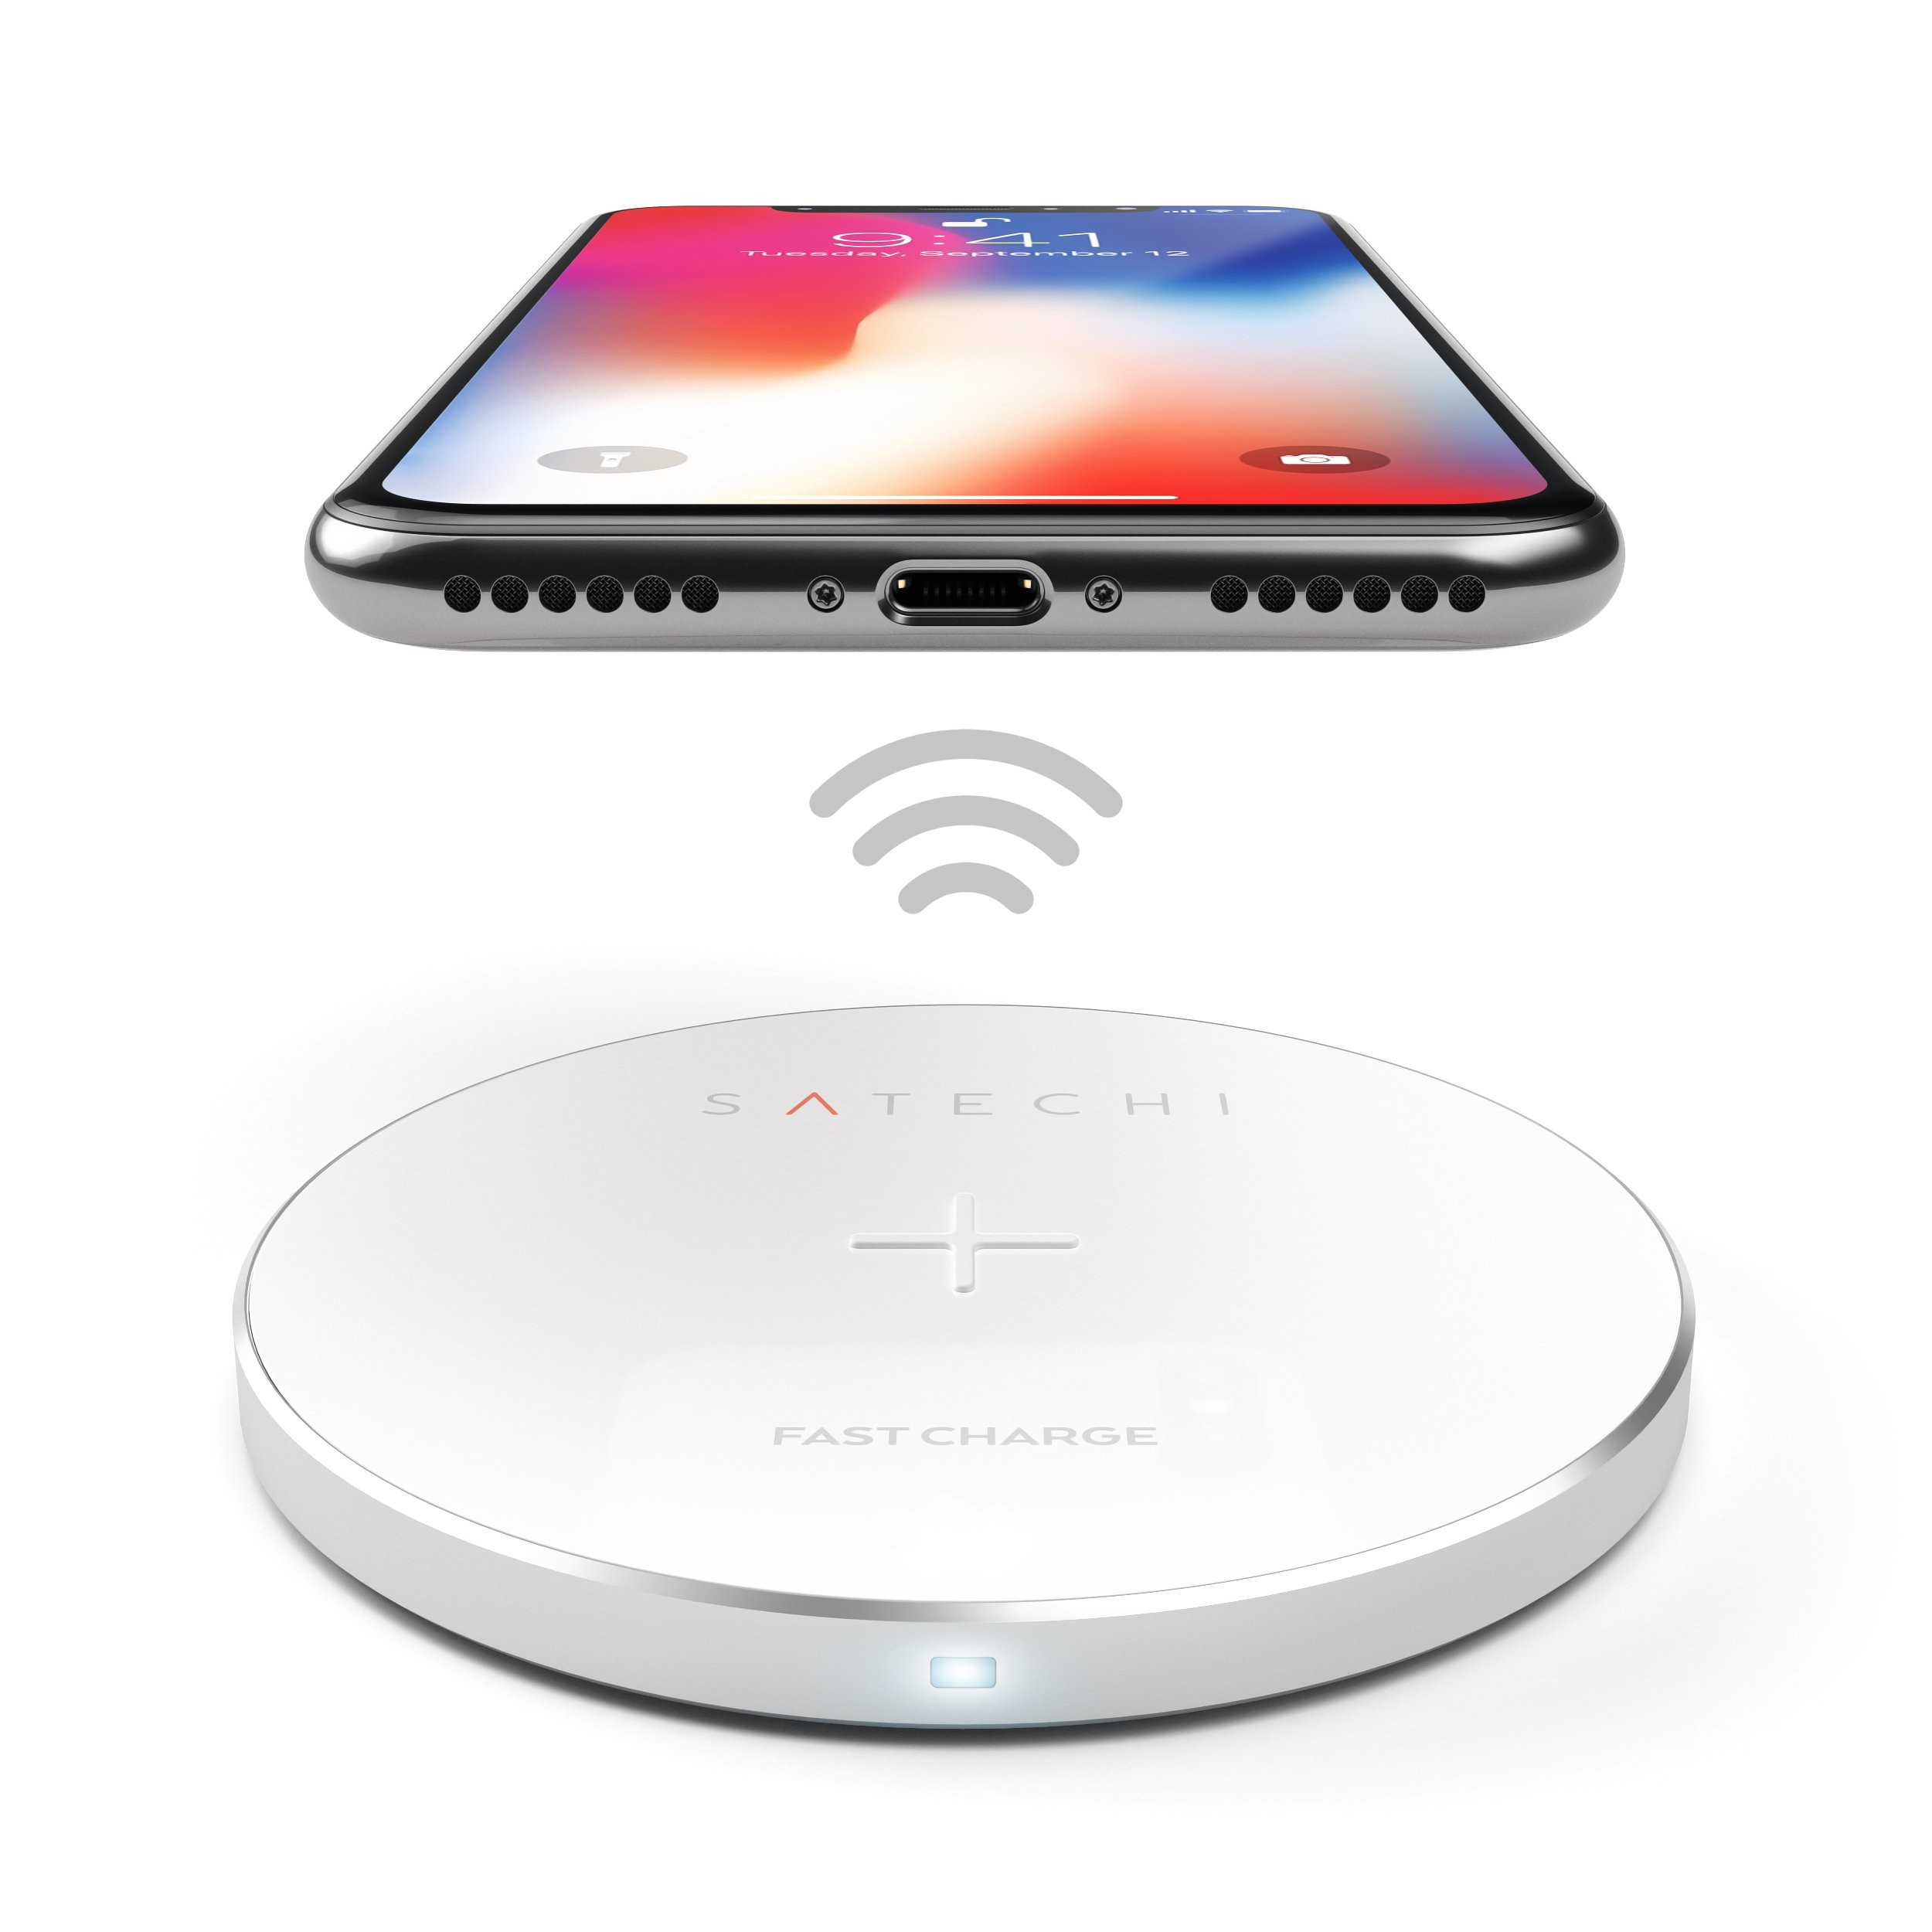 Satechi Fast Wireless Charger - Silver, ST-WCPS